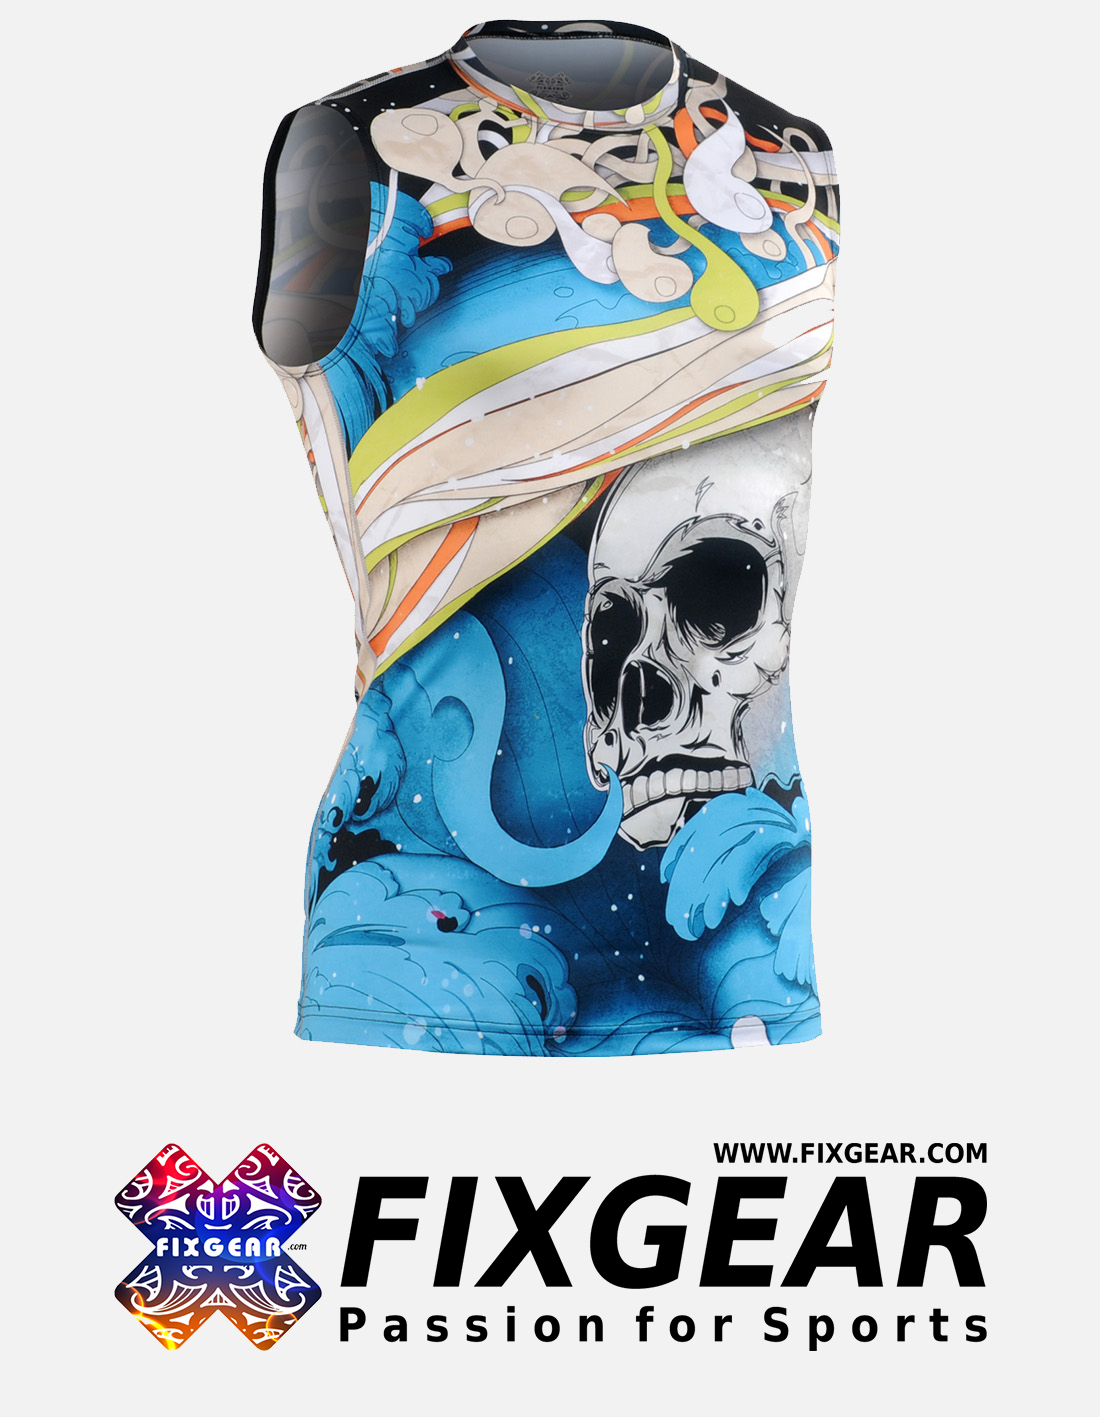 FIXGEAR CFN-H19B Compression Base Layer Sleeveless Shirt